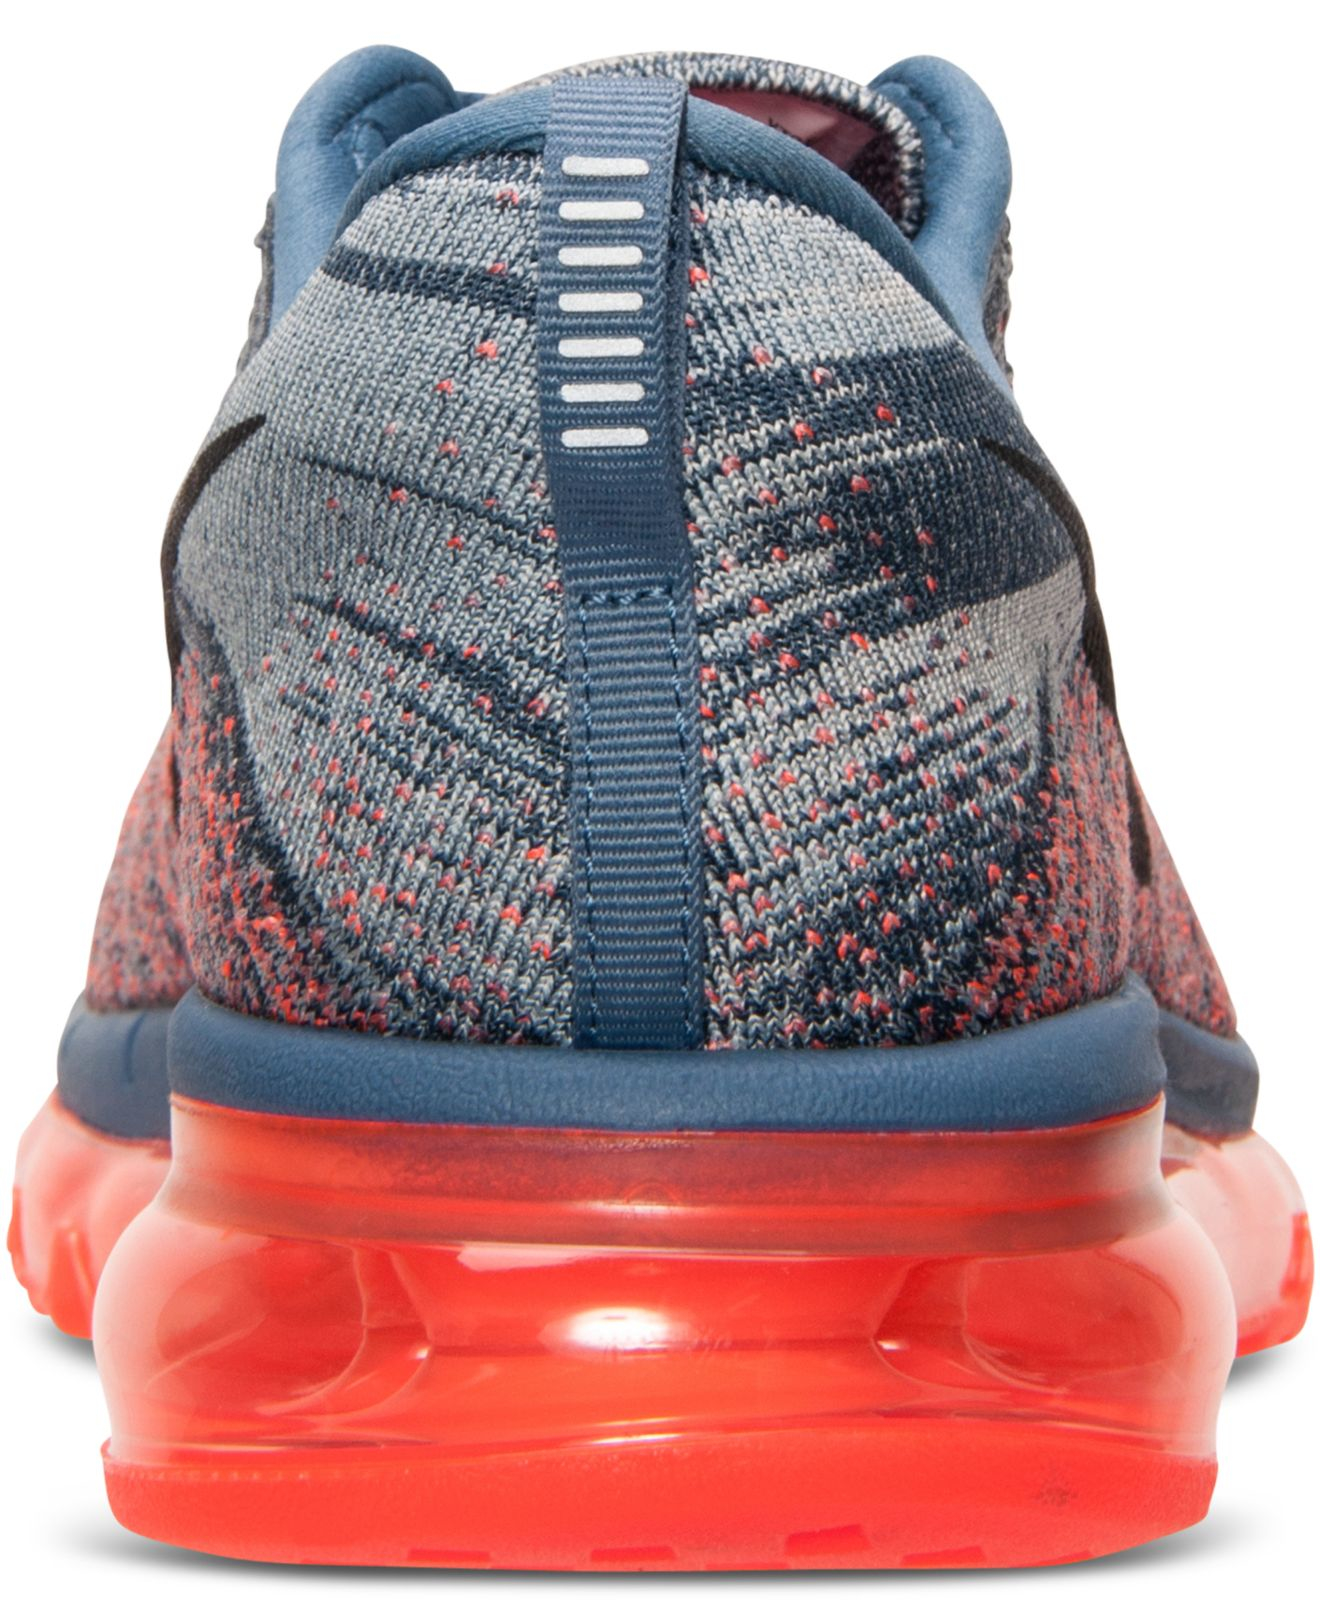 lower price with 0c2b4 7839f ... where to buy lyst nike mens flyknit air max running sneakers from  finish line in blue